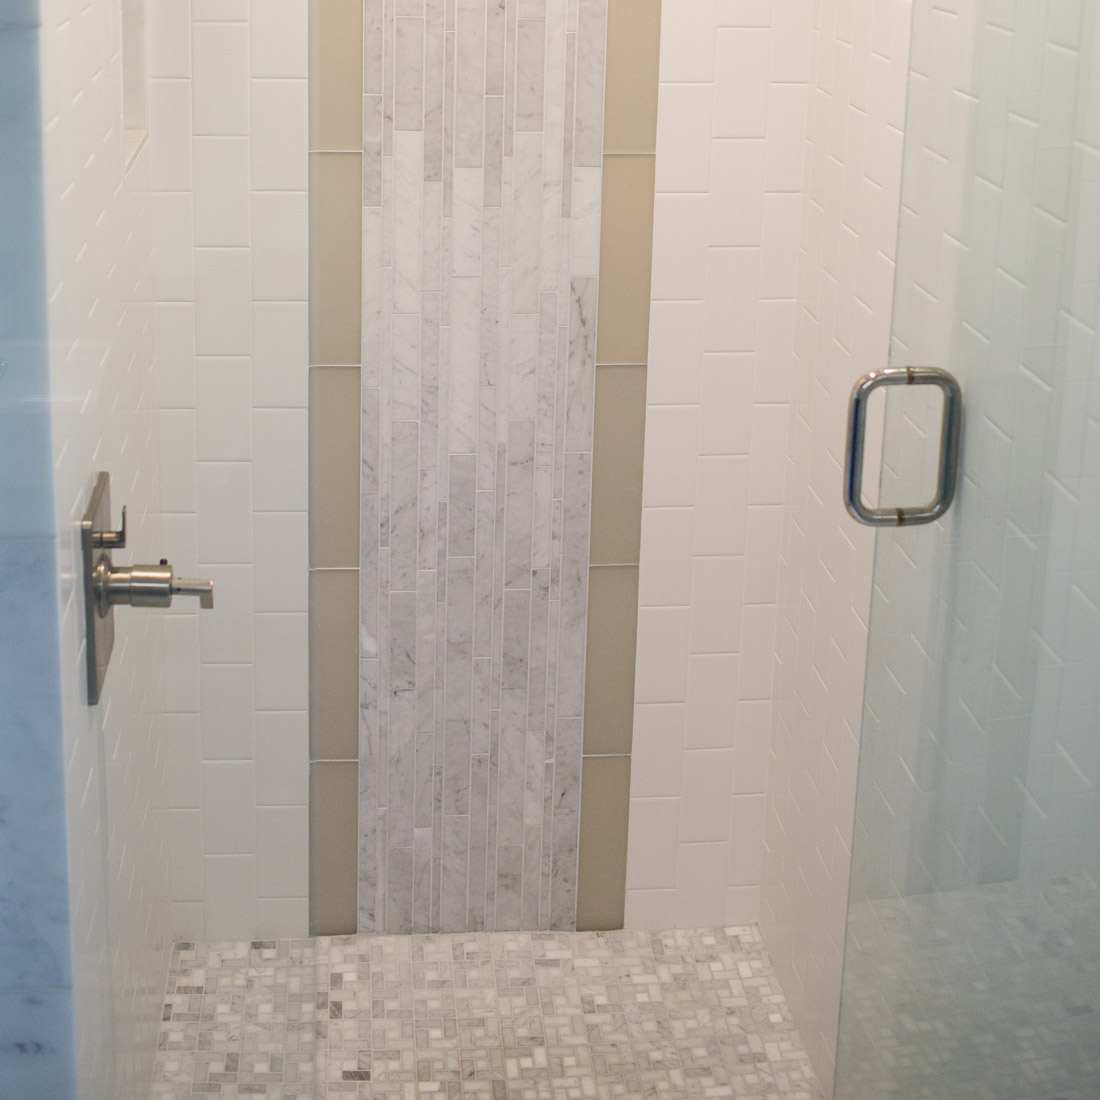 marble and glass tile pattern in master bathroom shower design by sara bates interior design